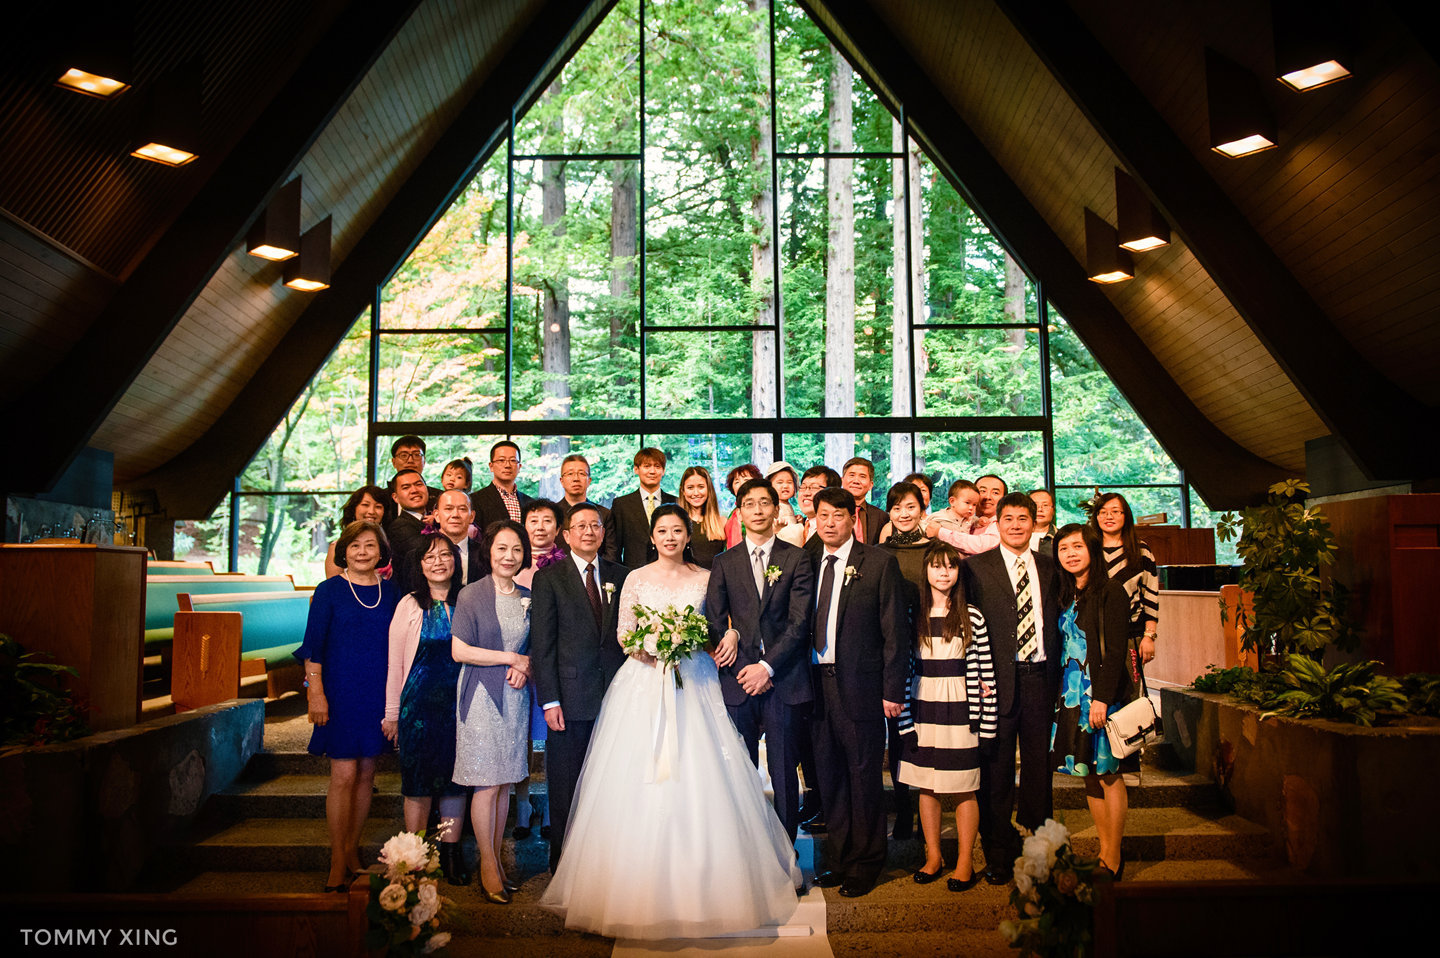 San Francisco Wedding Photography Valley Presbyterian Church WEDDING Tommy Xing Photography 洛杉矶旧金山婚礼婚纱照摄影师095.jpg